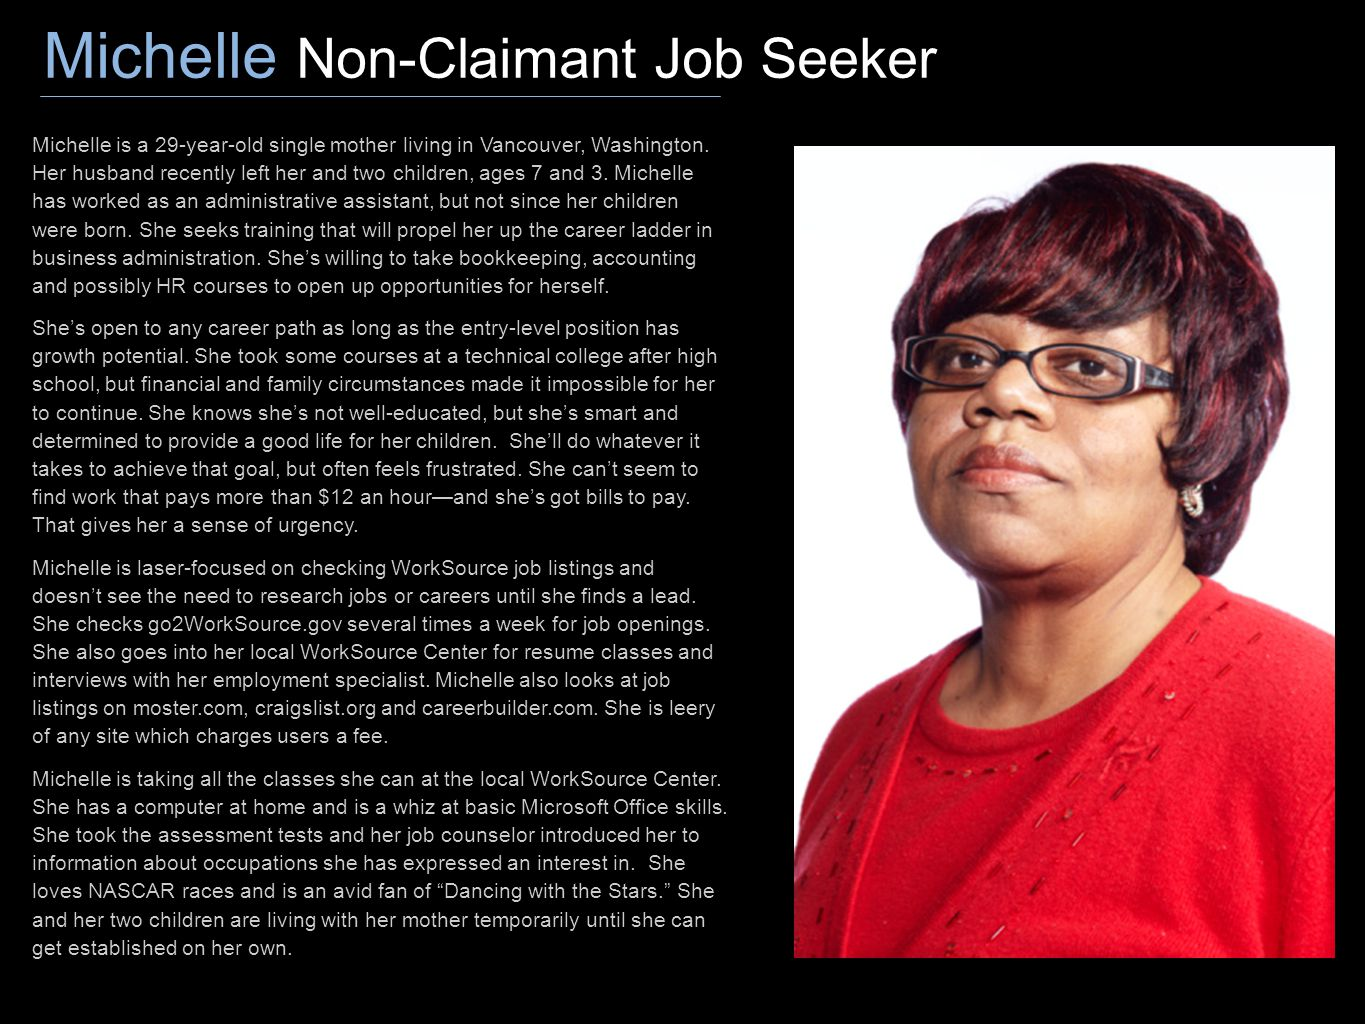 Michelle Non-Claimant Job Seeker Michelle is a 29-year-old single mother living in Vancouver, Washington.